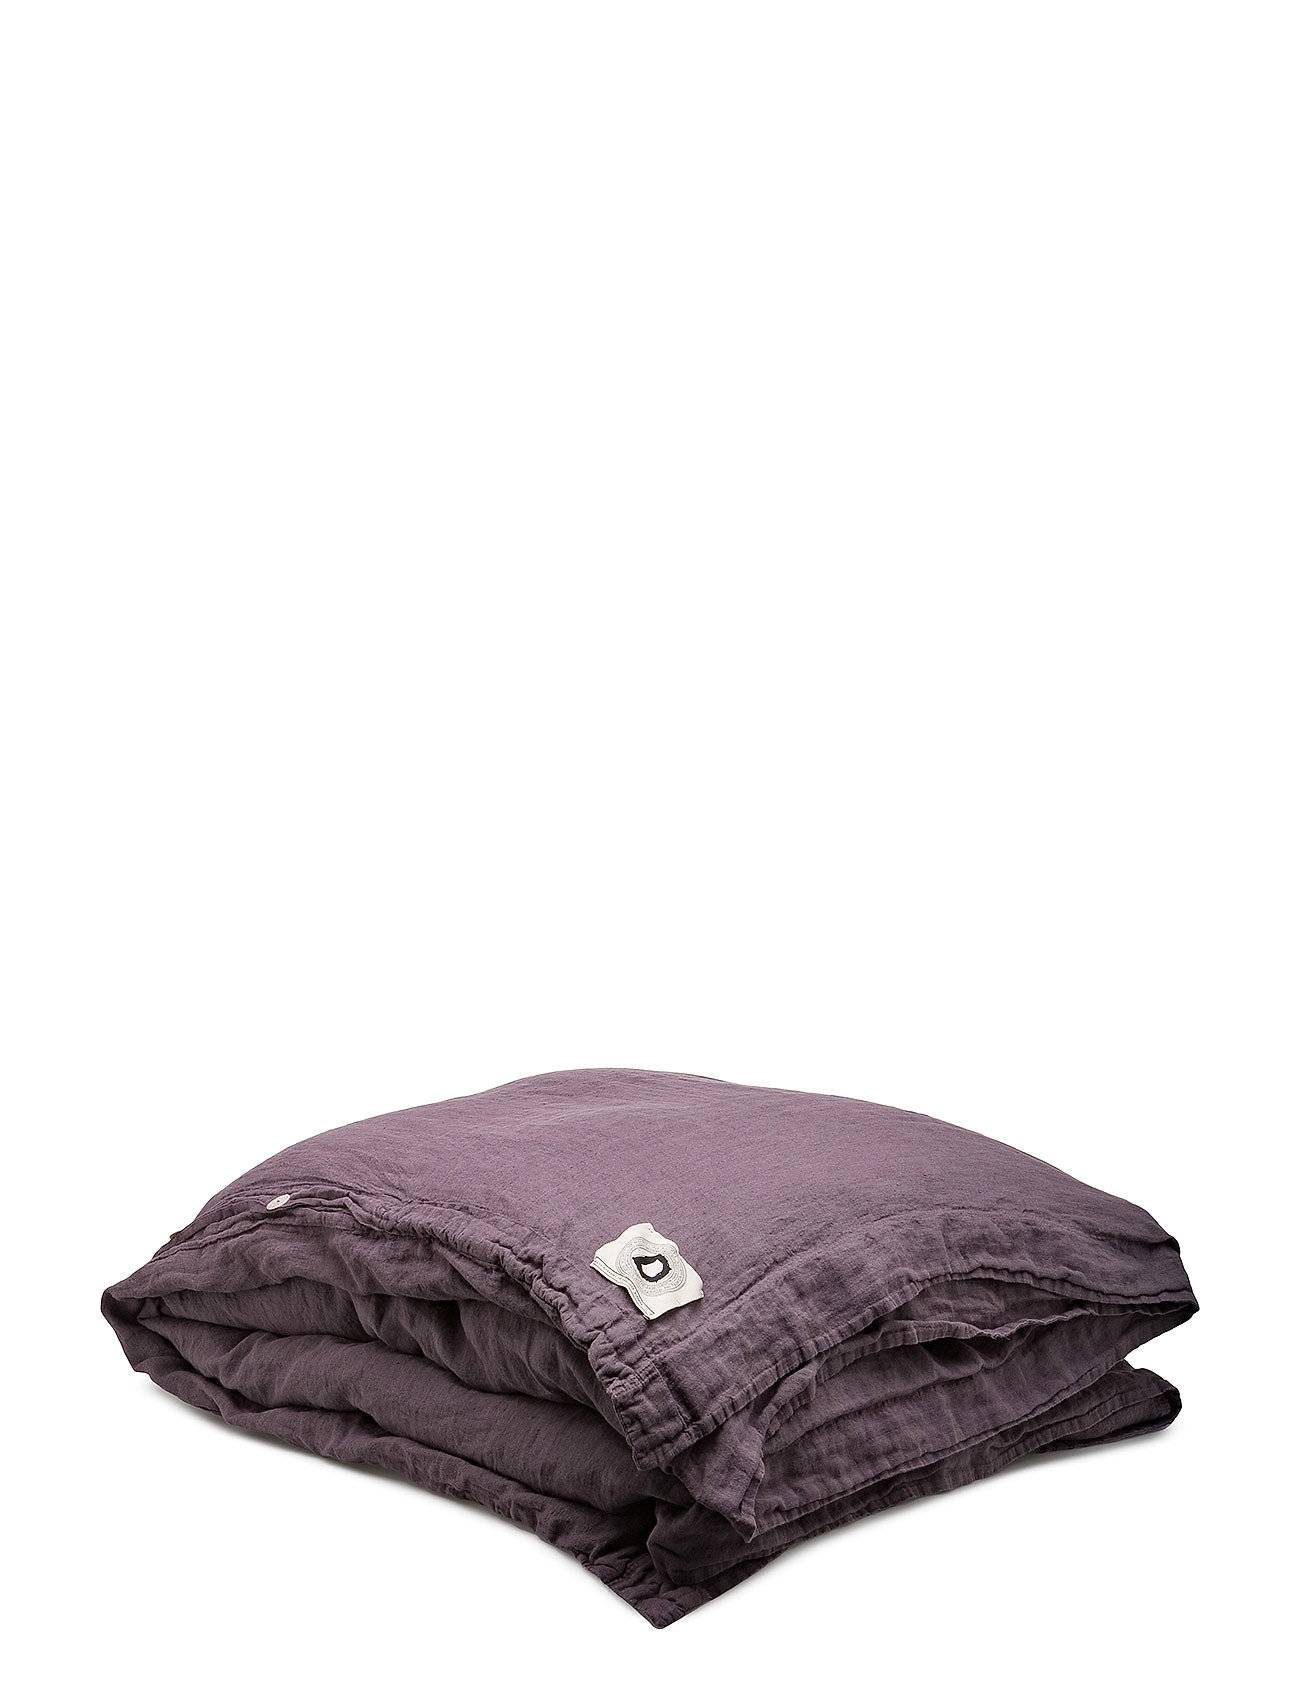 Dirty Linen Animeaux Duvet Cover